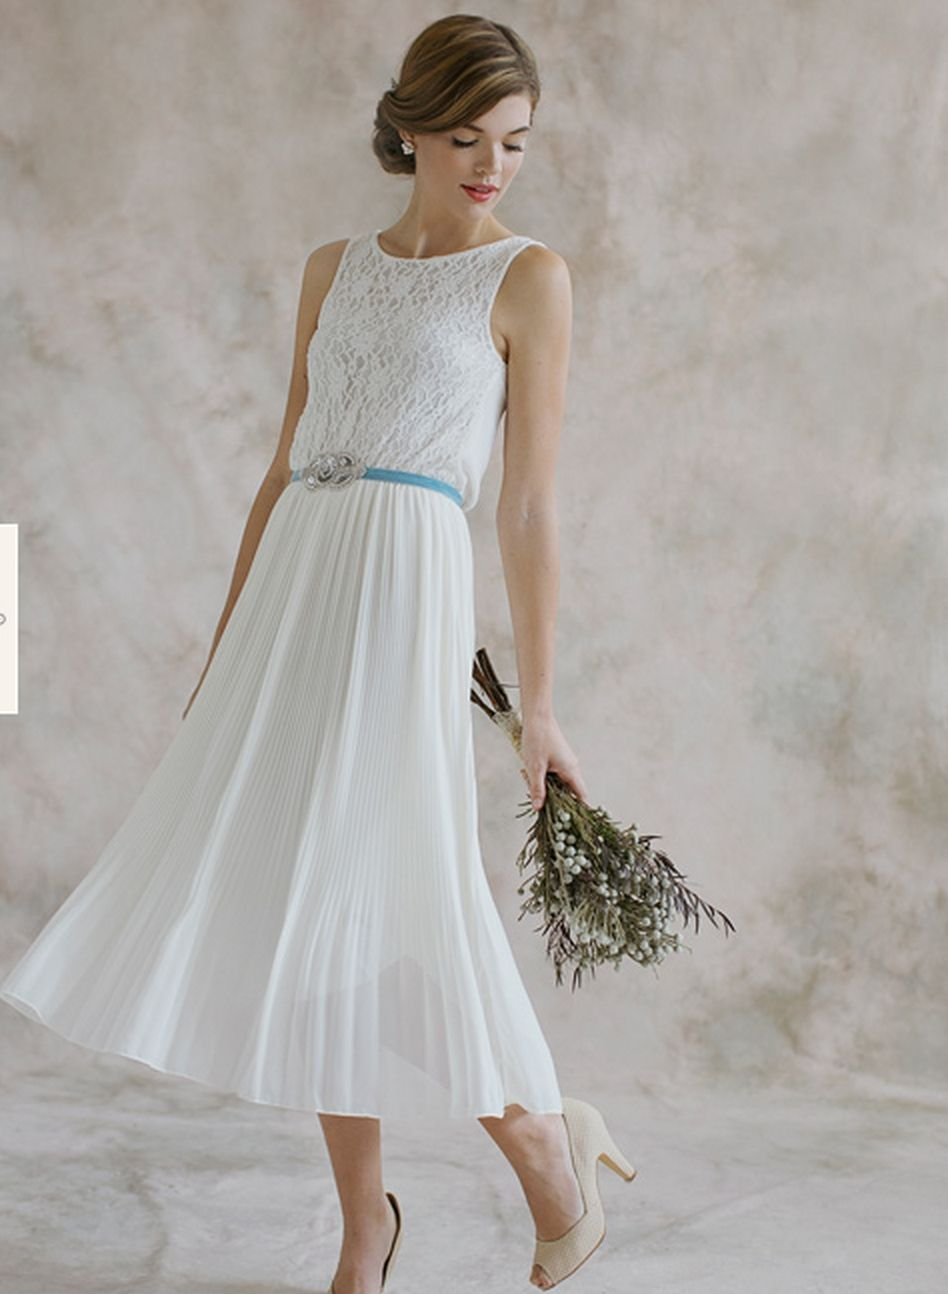 Simple Wedding Dresses For 2Nd Marriages | Wedding Dress | Pinterest ...